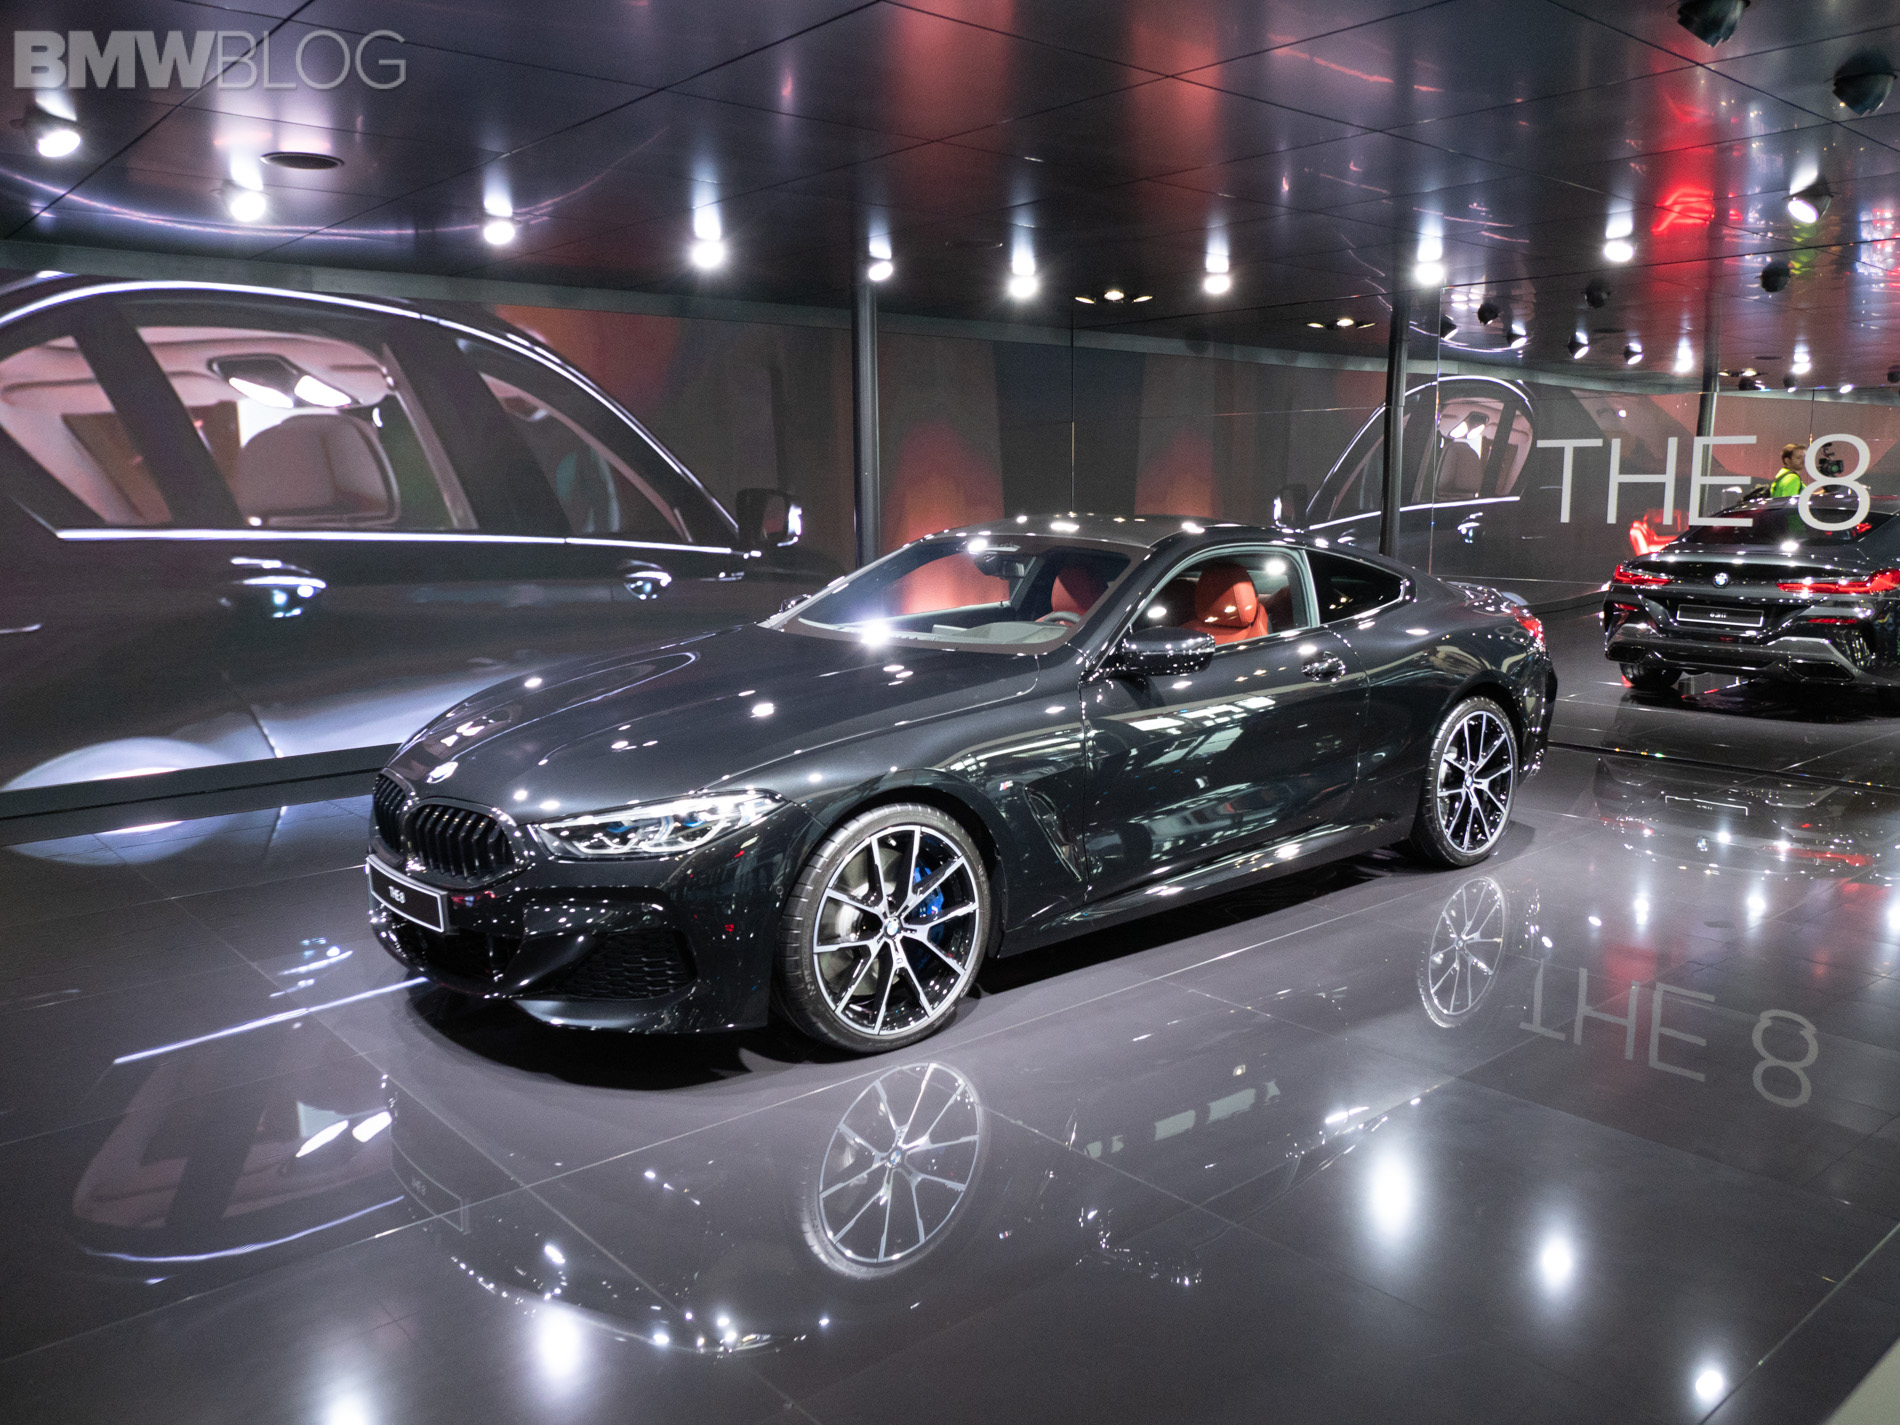 Paris 2018: BMW M850i Coupe looks stunning in black ...